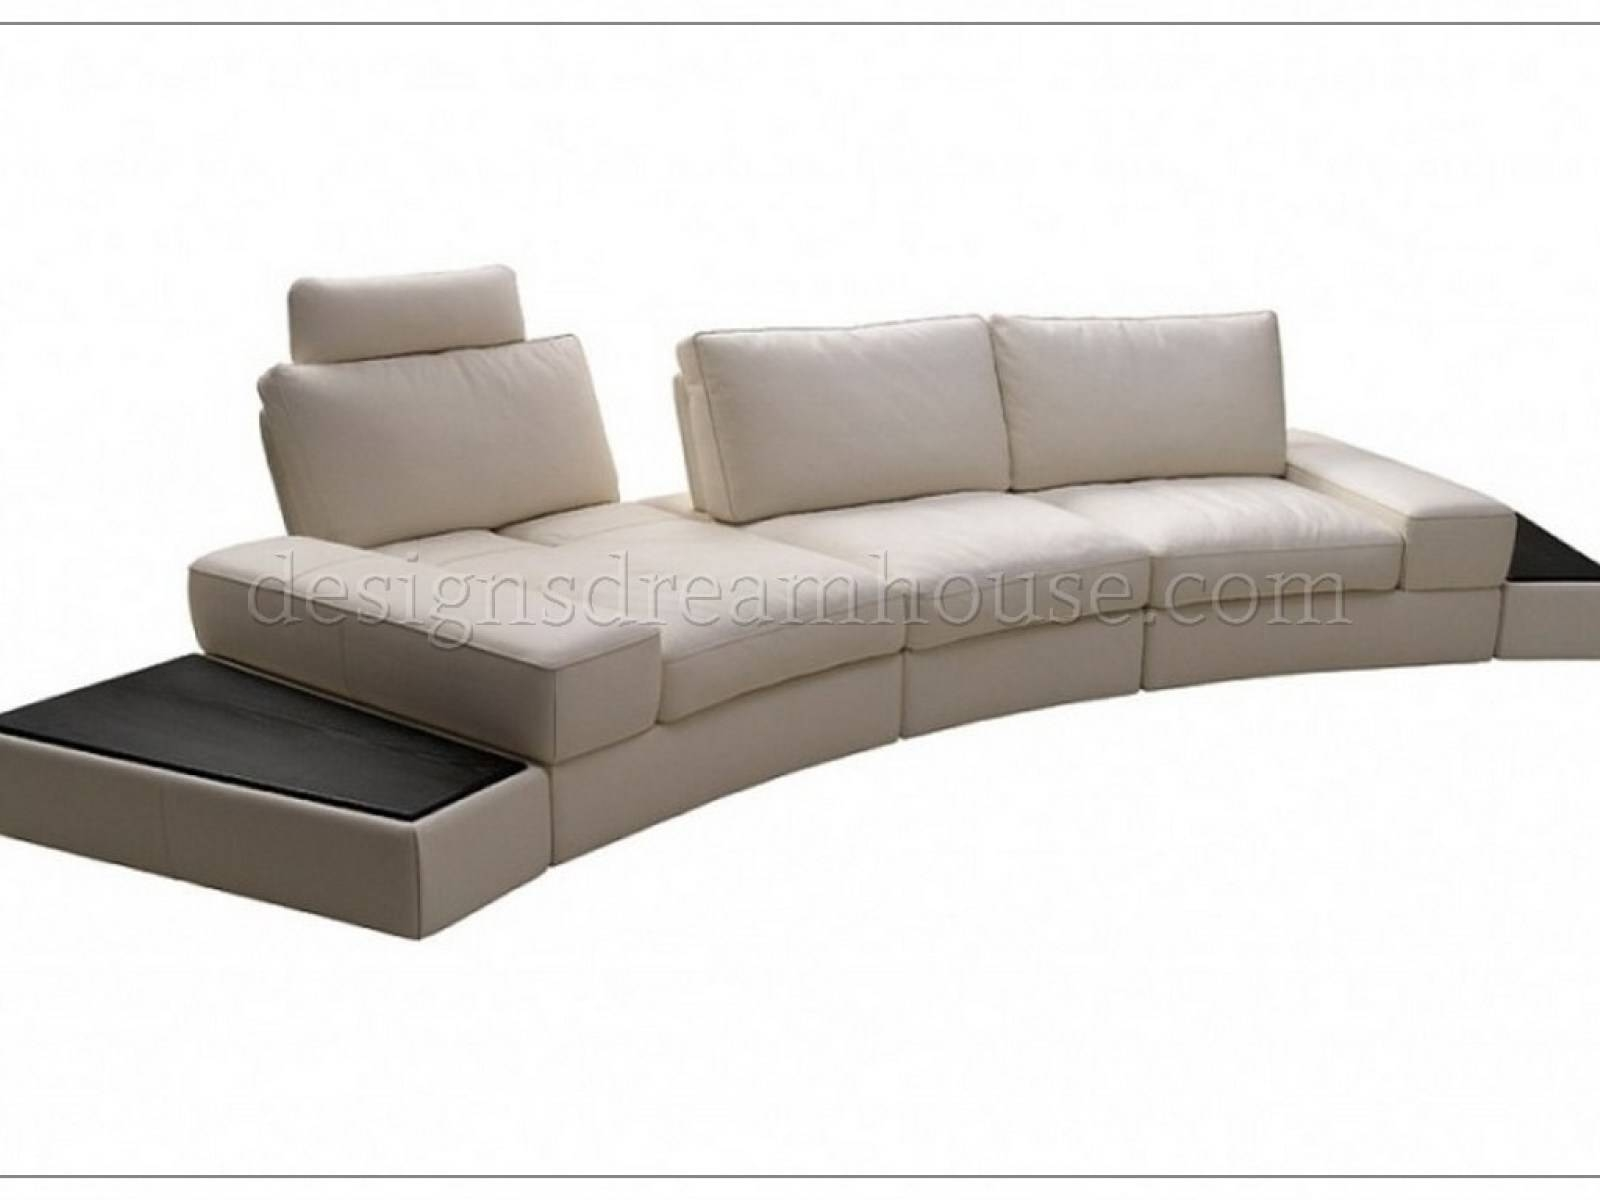 Furniture: Excellent Beige Sectional Sofa For Your Living Room with regard to Abbyson Living Charlotte Beige Sectional Sofa and Ottoman (Image 19 of 30)